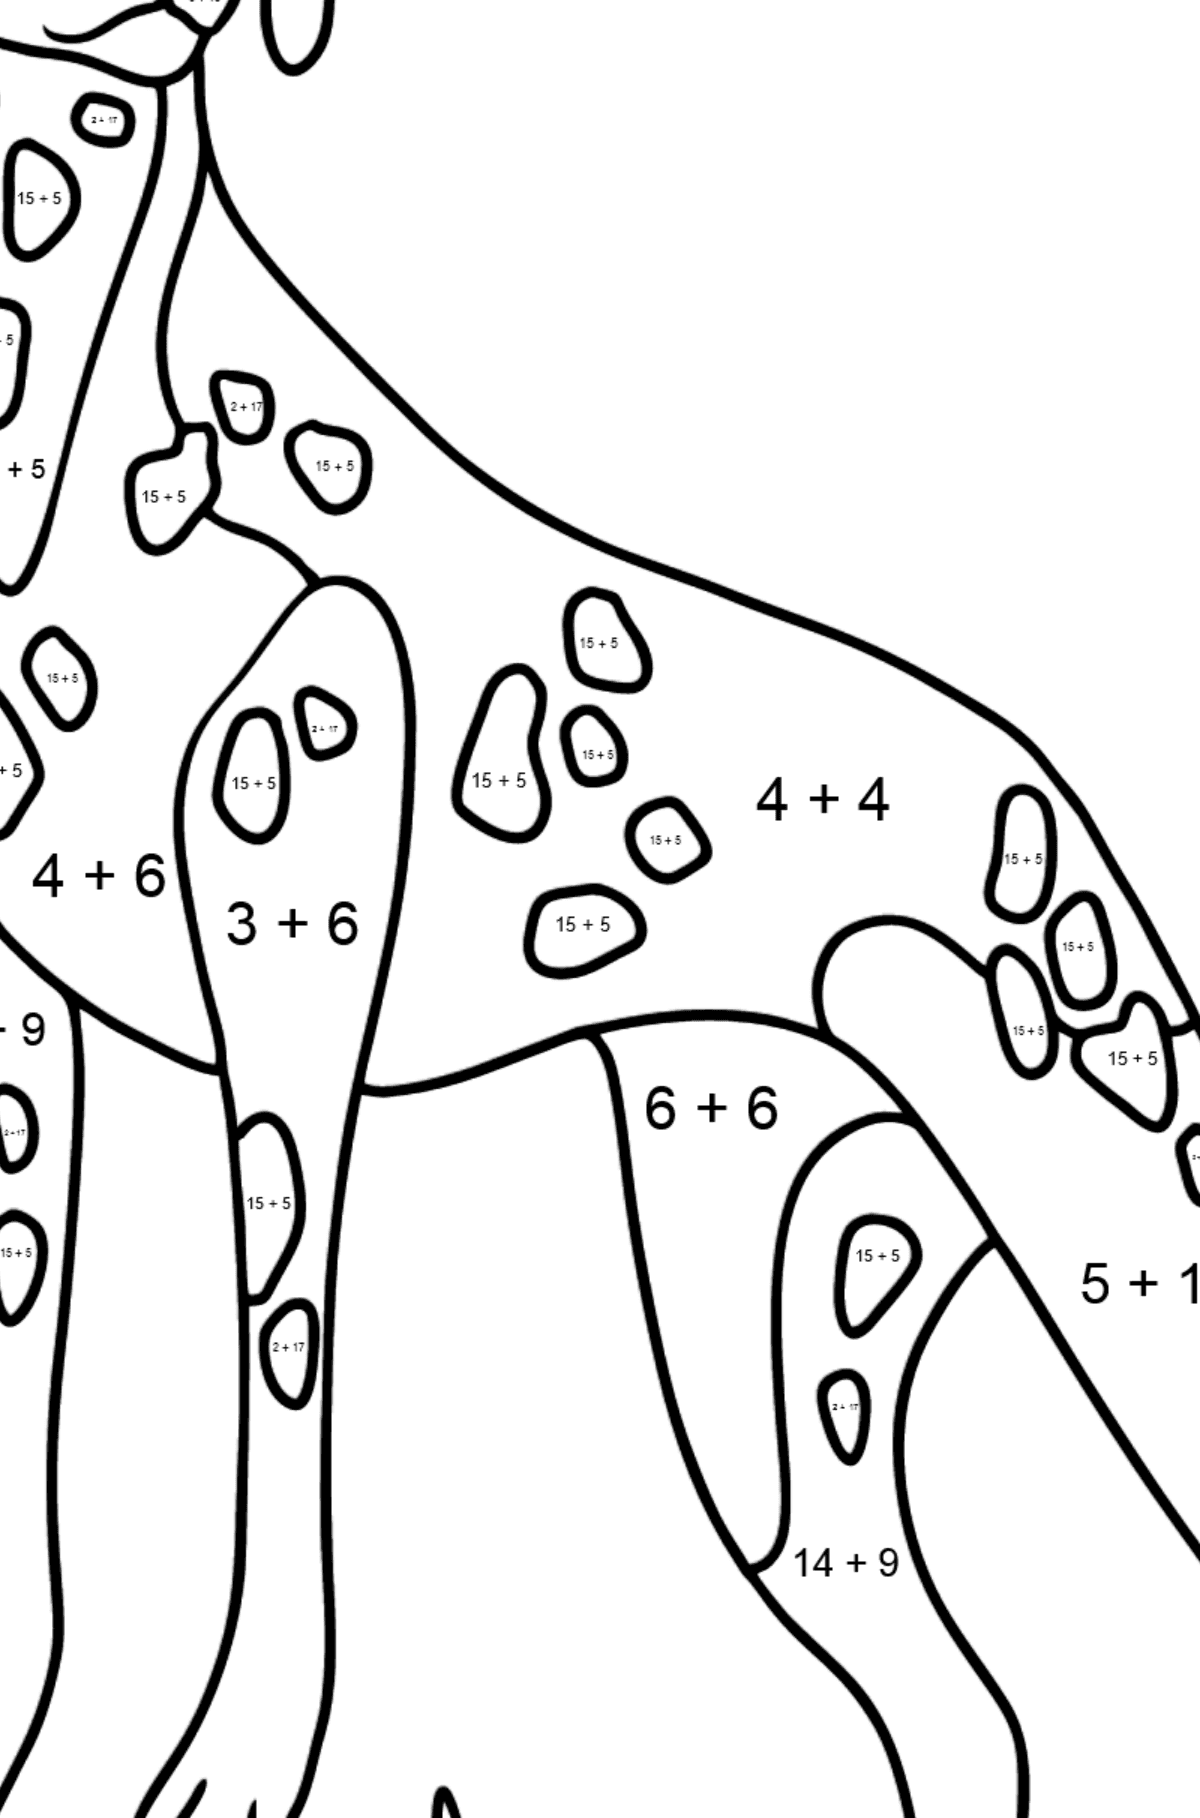 Dalmatian coloring page - Math Coloring - Addition for Kids